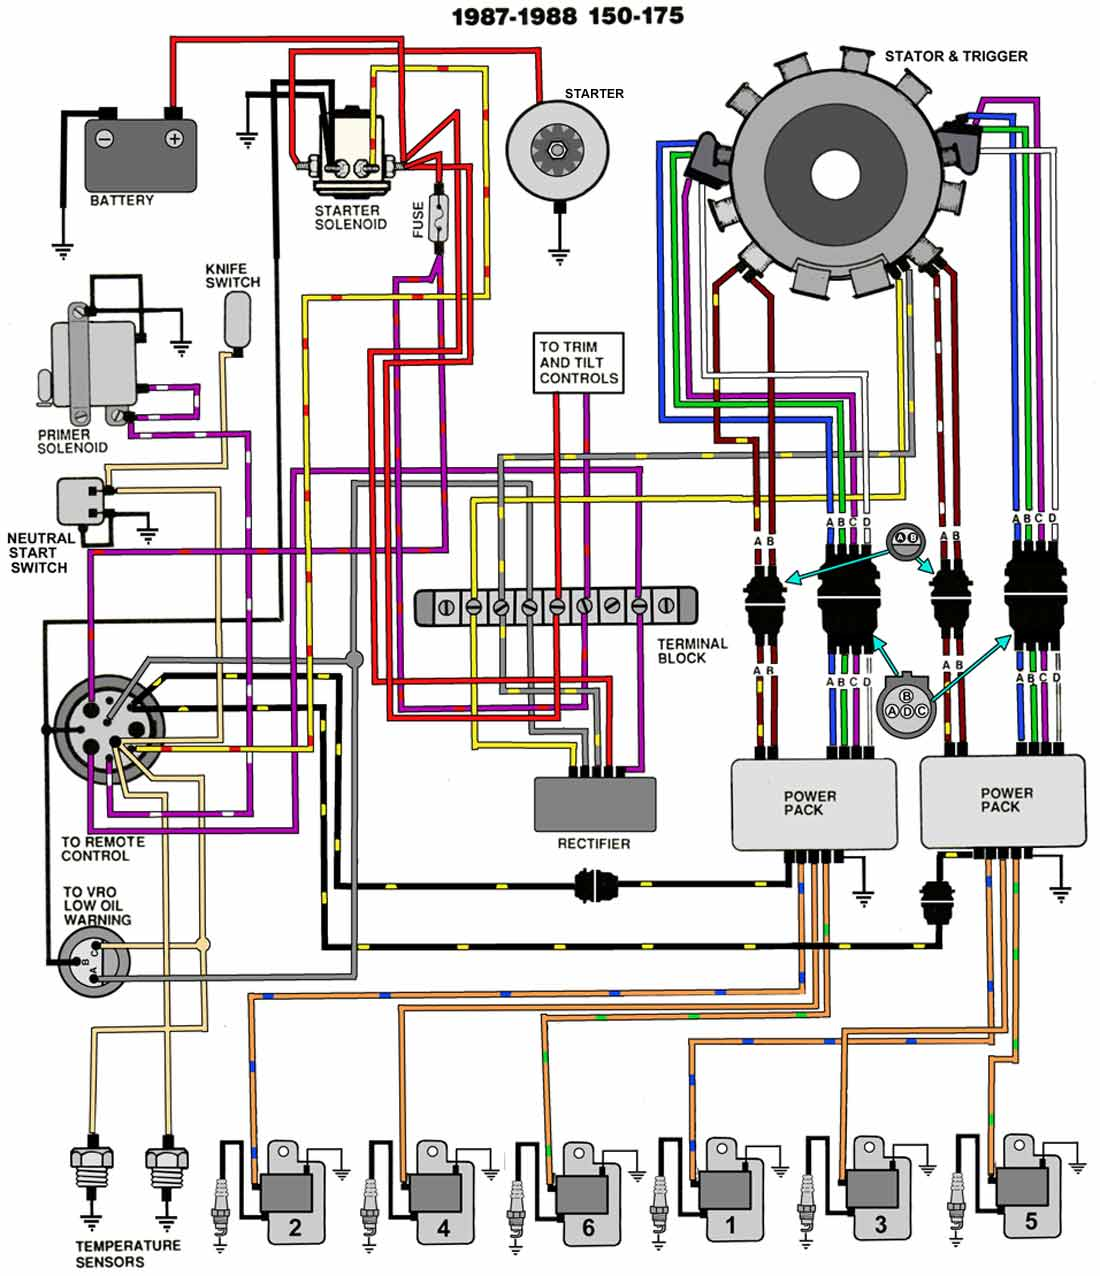 87_88_150_175 wiring diagram 1990 150 johnson outboard readingrat net johnson ignition switch wiring diagram at bakdesigns.co